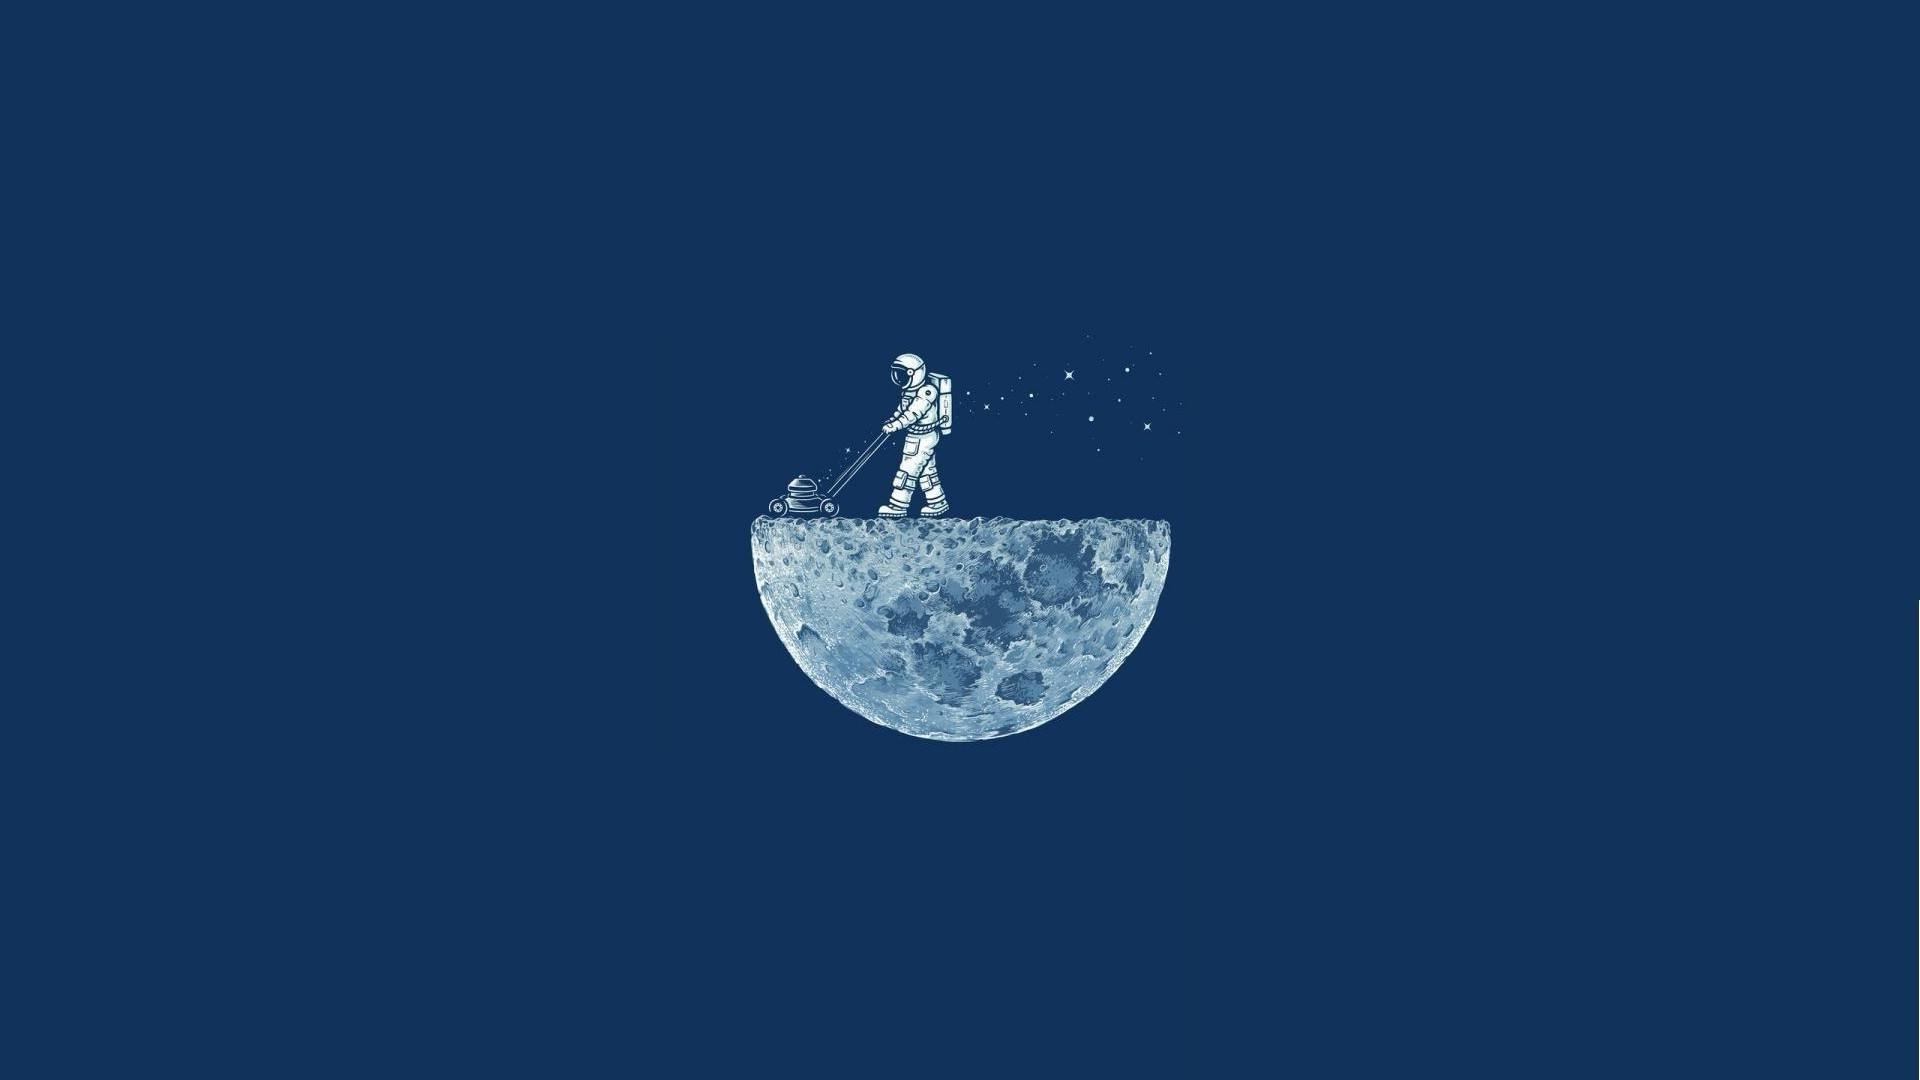 Adventure Time Iphone X Wallpaper Space Minimalism Blue Background Moon Astronaut